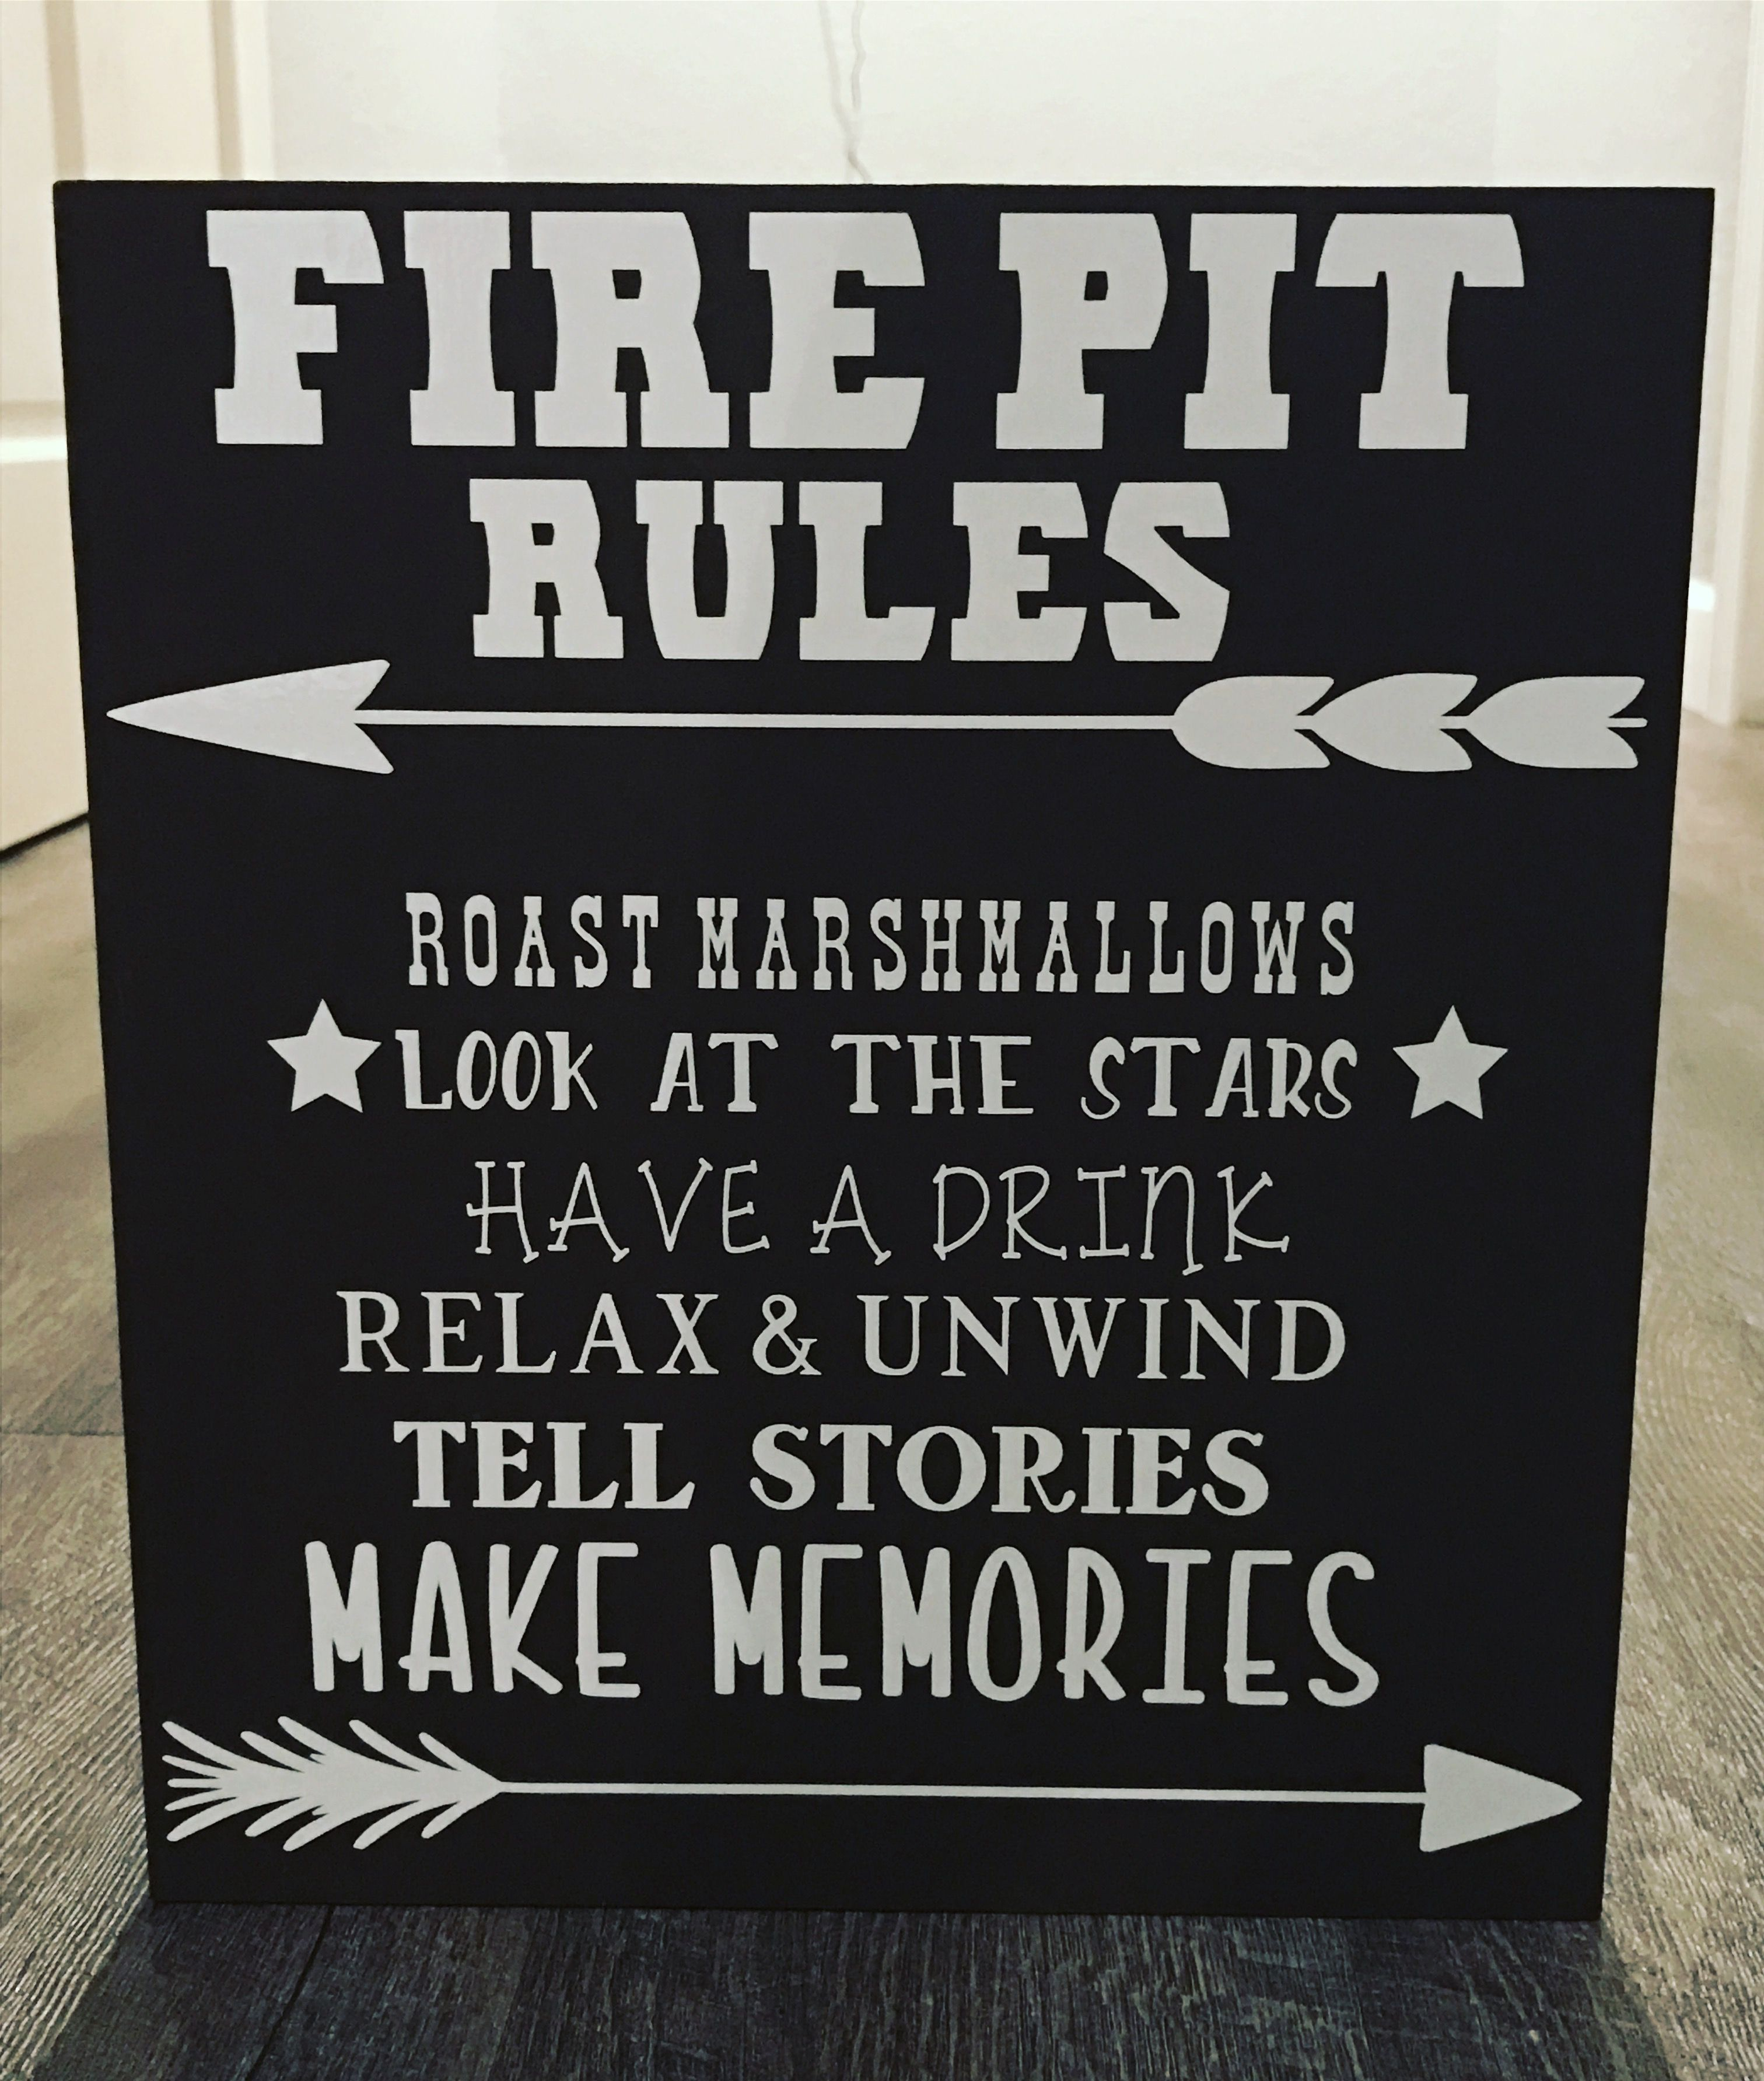 Fire Pit Rules wooden sign | Rustic fire pits, Fire pit ...